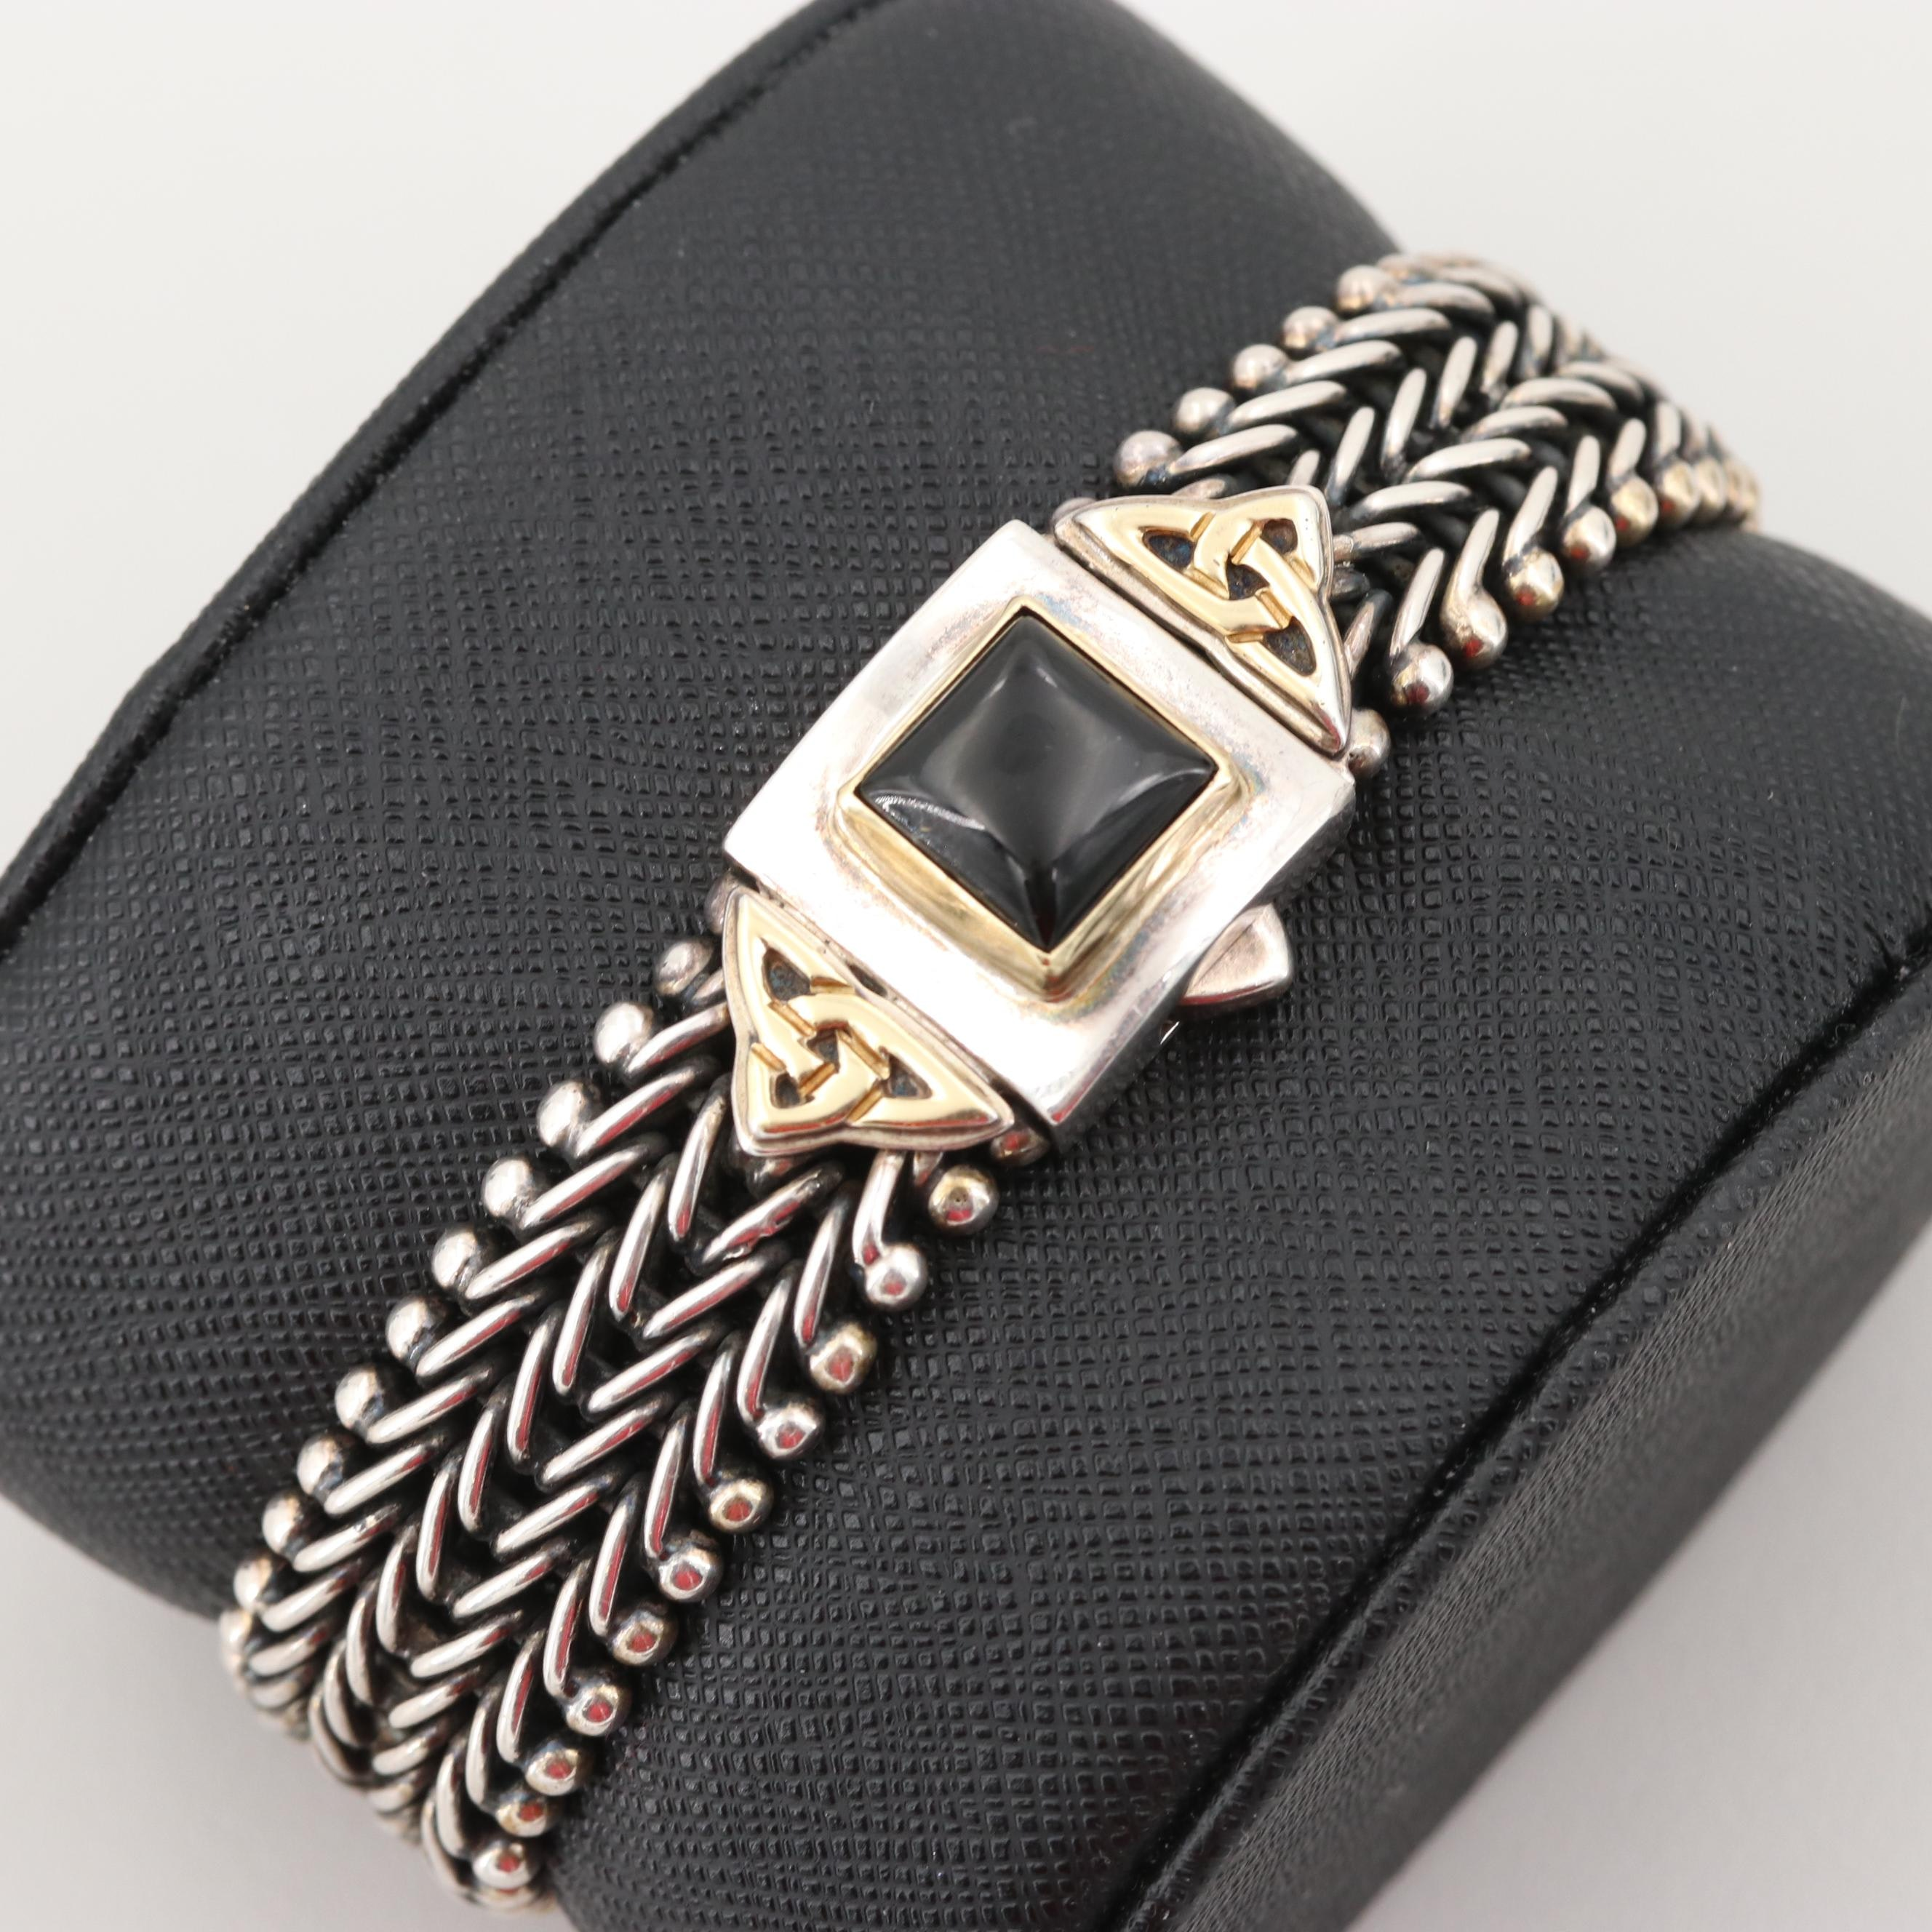 Sterling Silver Black Onyx Chain Link Bracelet with 18K Yellow Gold Accents